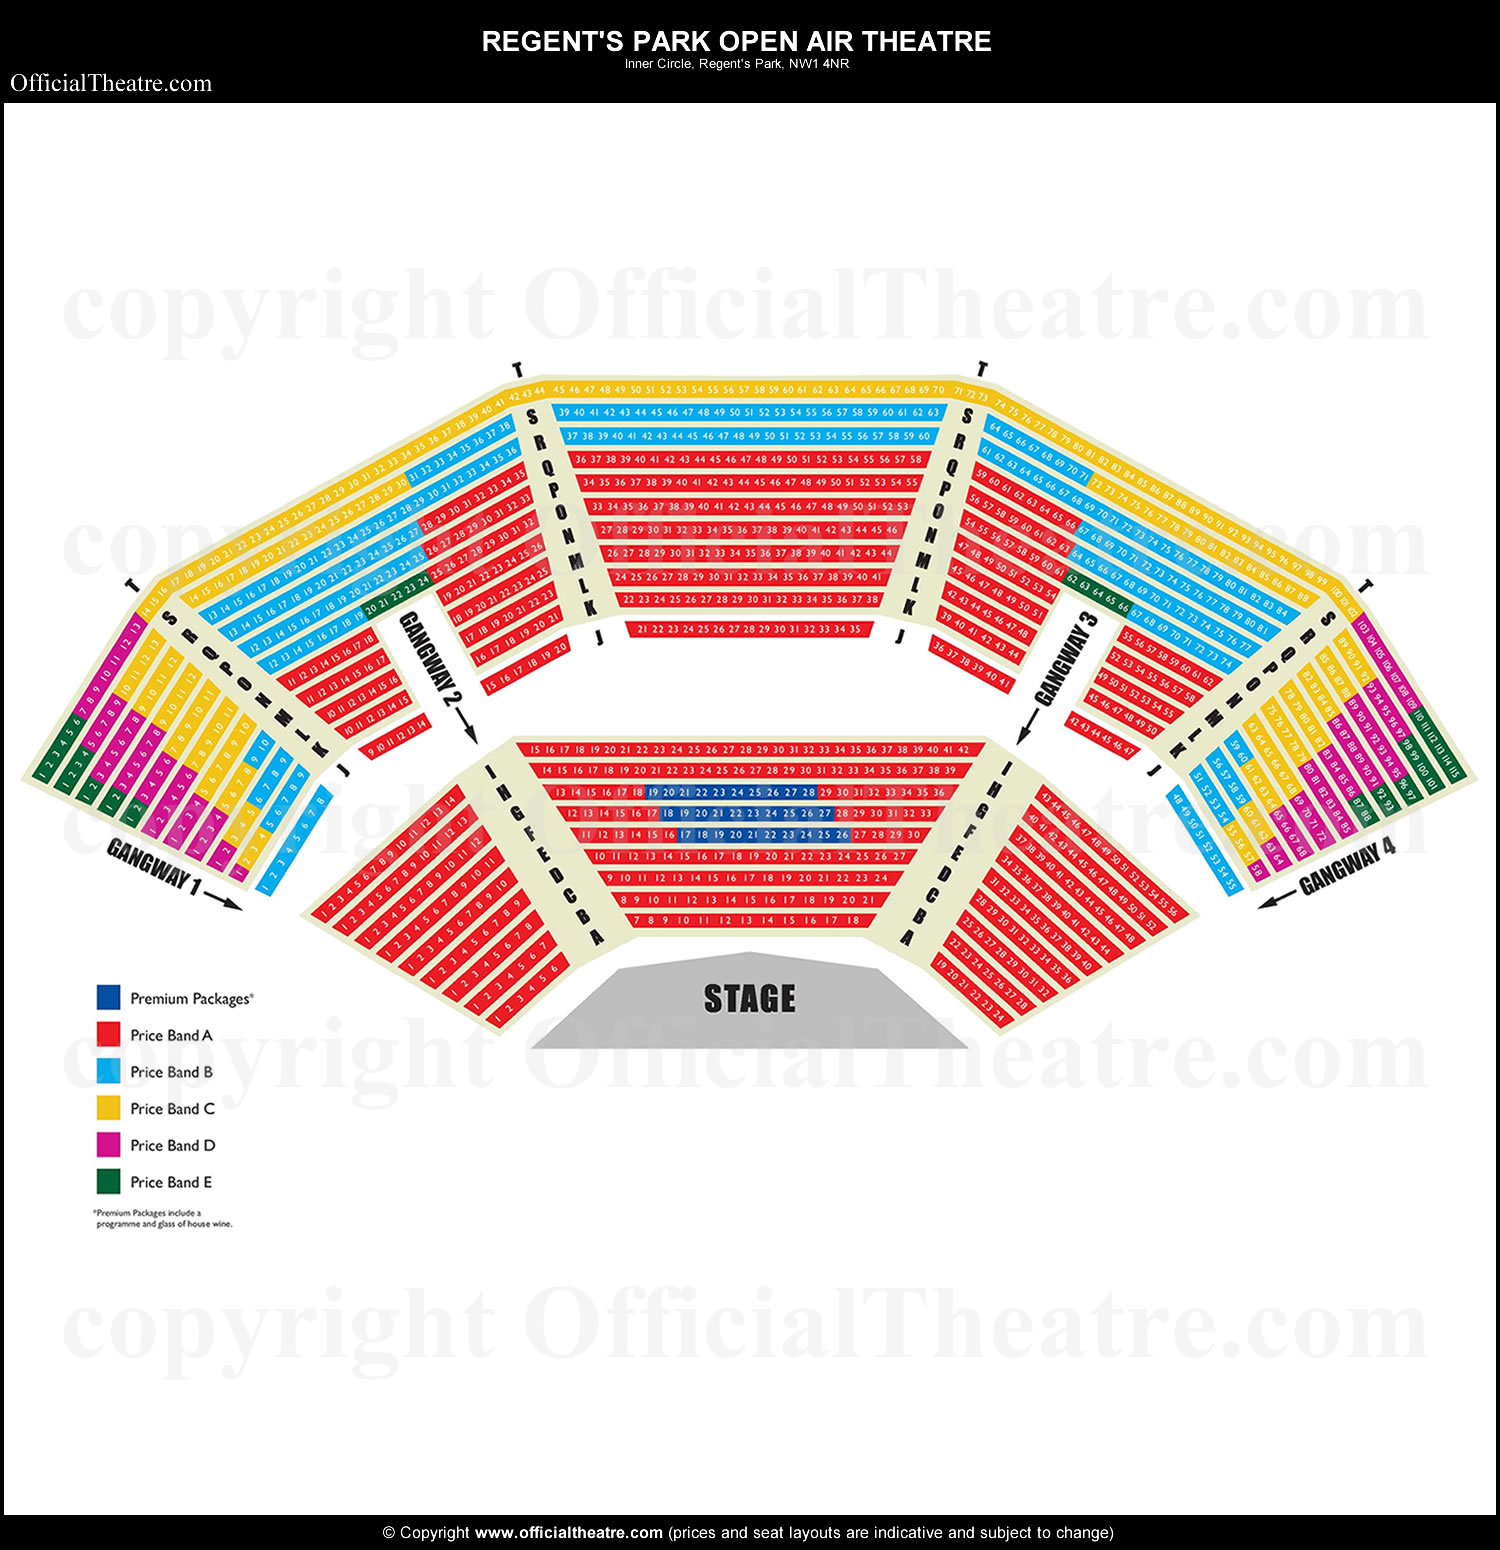 Regents Park Open Air Theatre London Seat Map And Prices